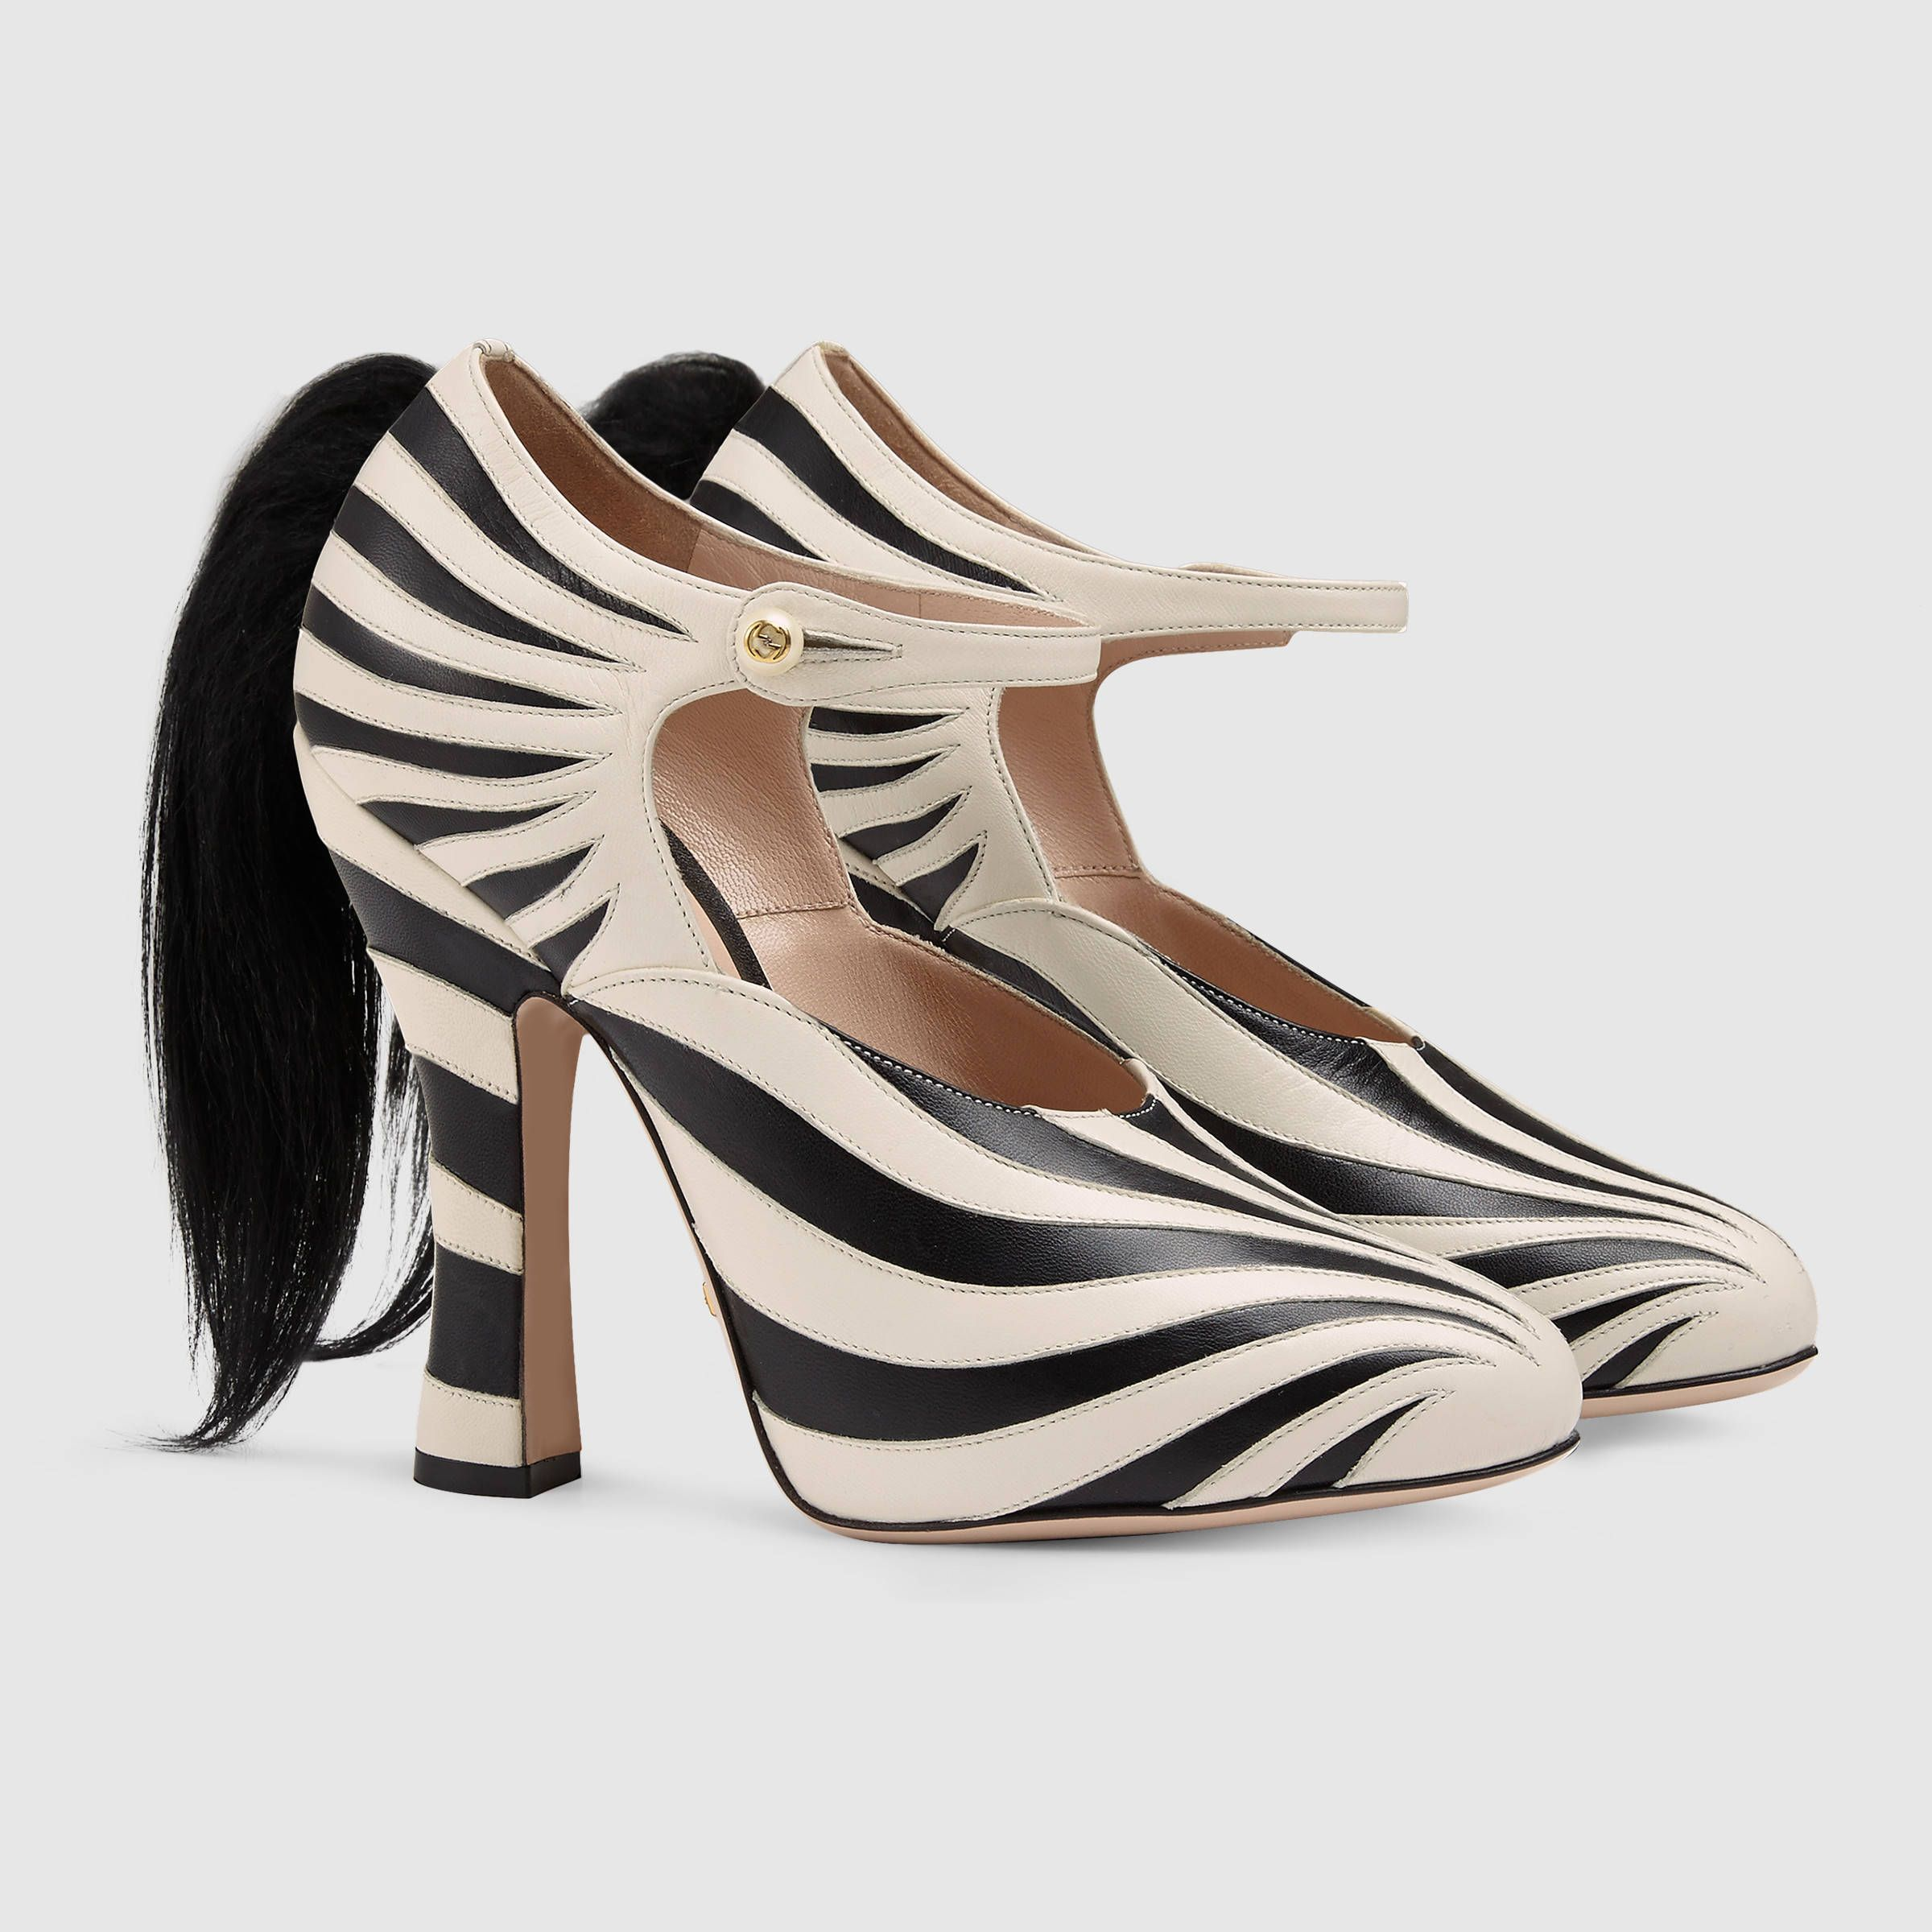 c546e48d4 Gucci Zebra Pumps | I Like Your Shoes! in 2019 | Leather pumps ...